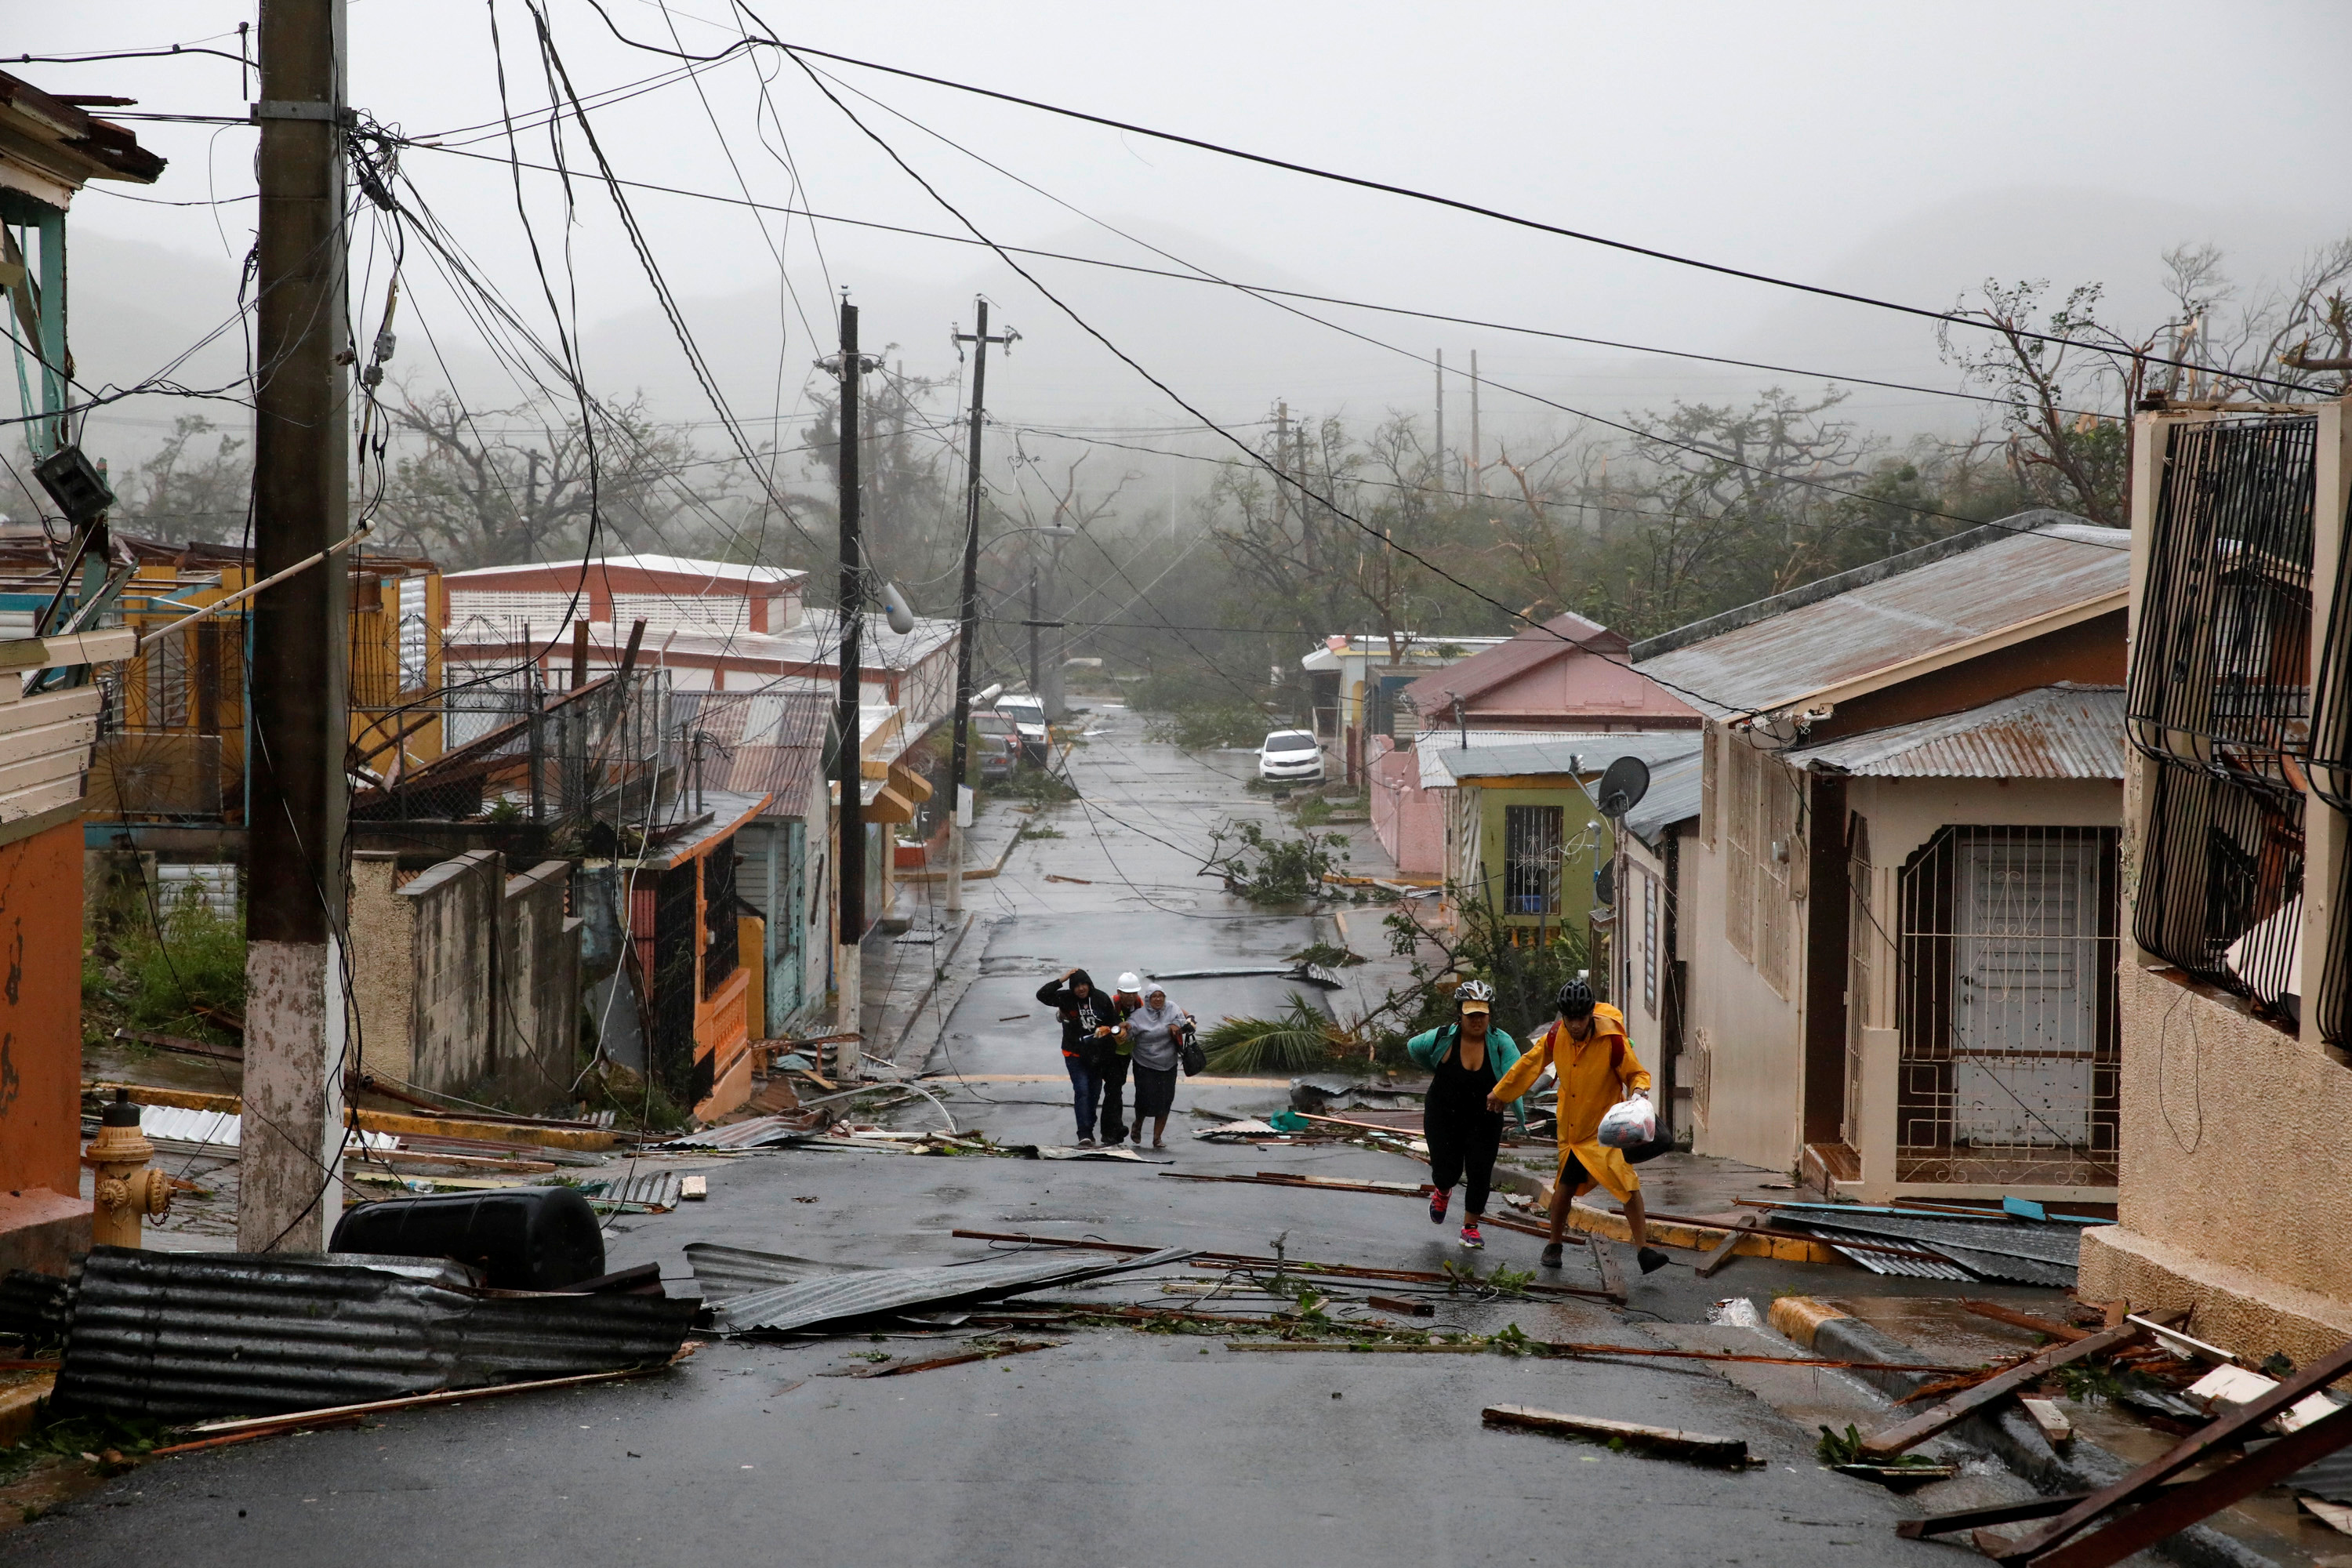 Rescue workers help people after the area was hit by Hurricane Maria in Guayama, Puerto Rico September 20, 2017. REUTERS/Carlos Garcia Rawlins